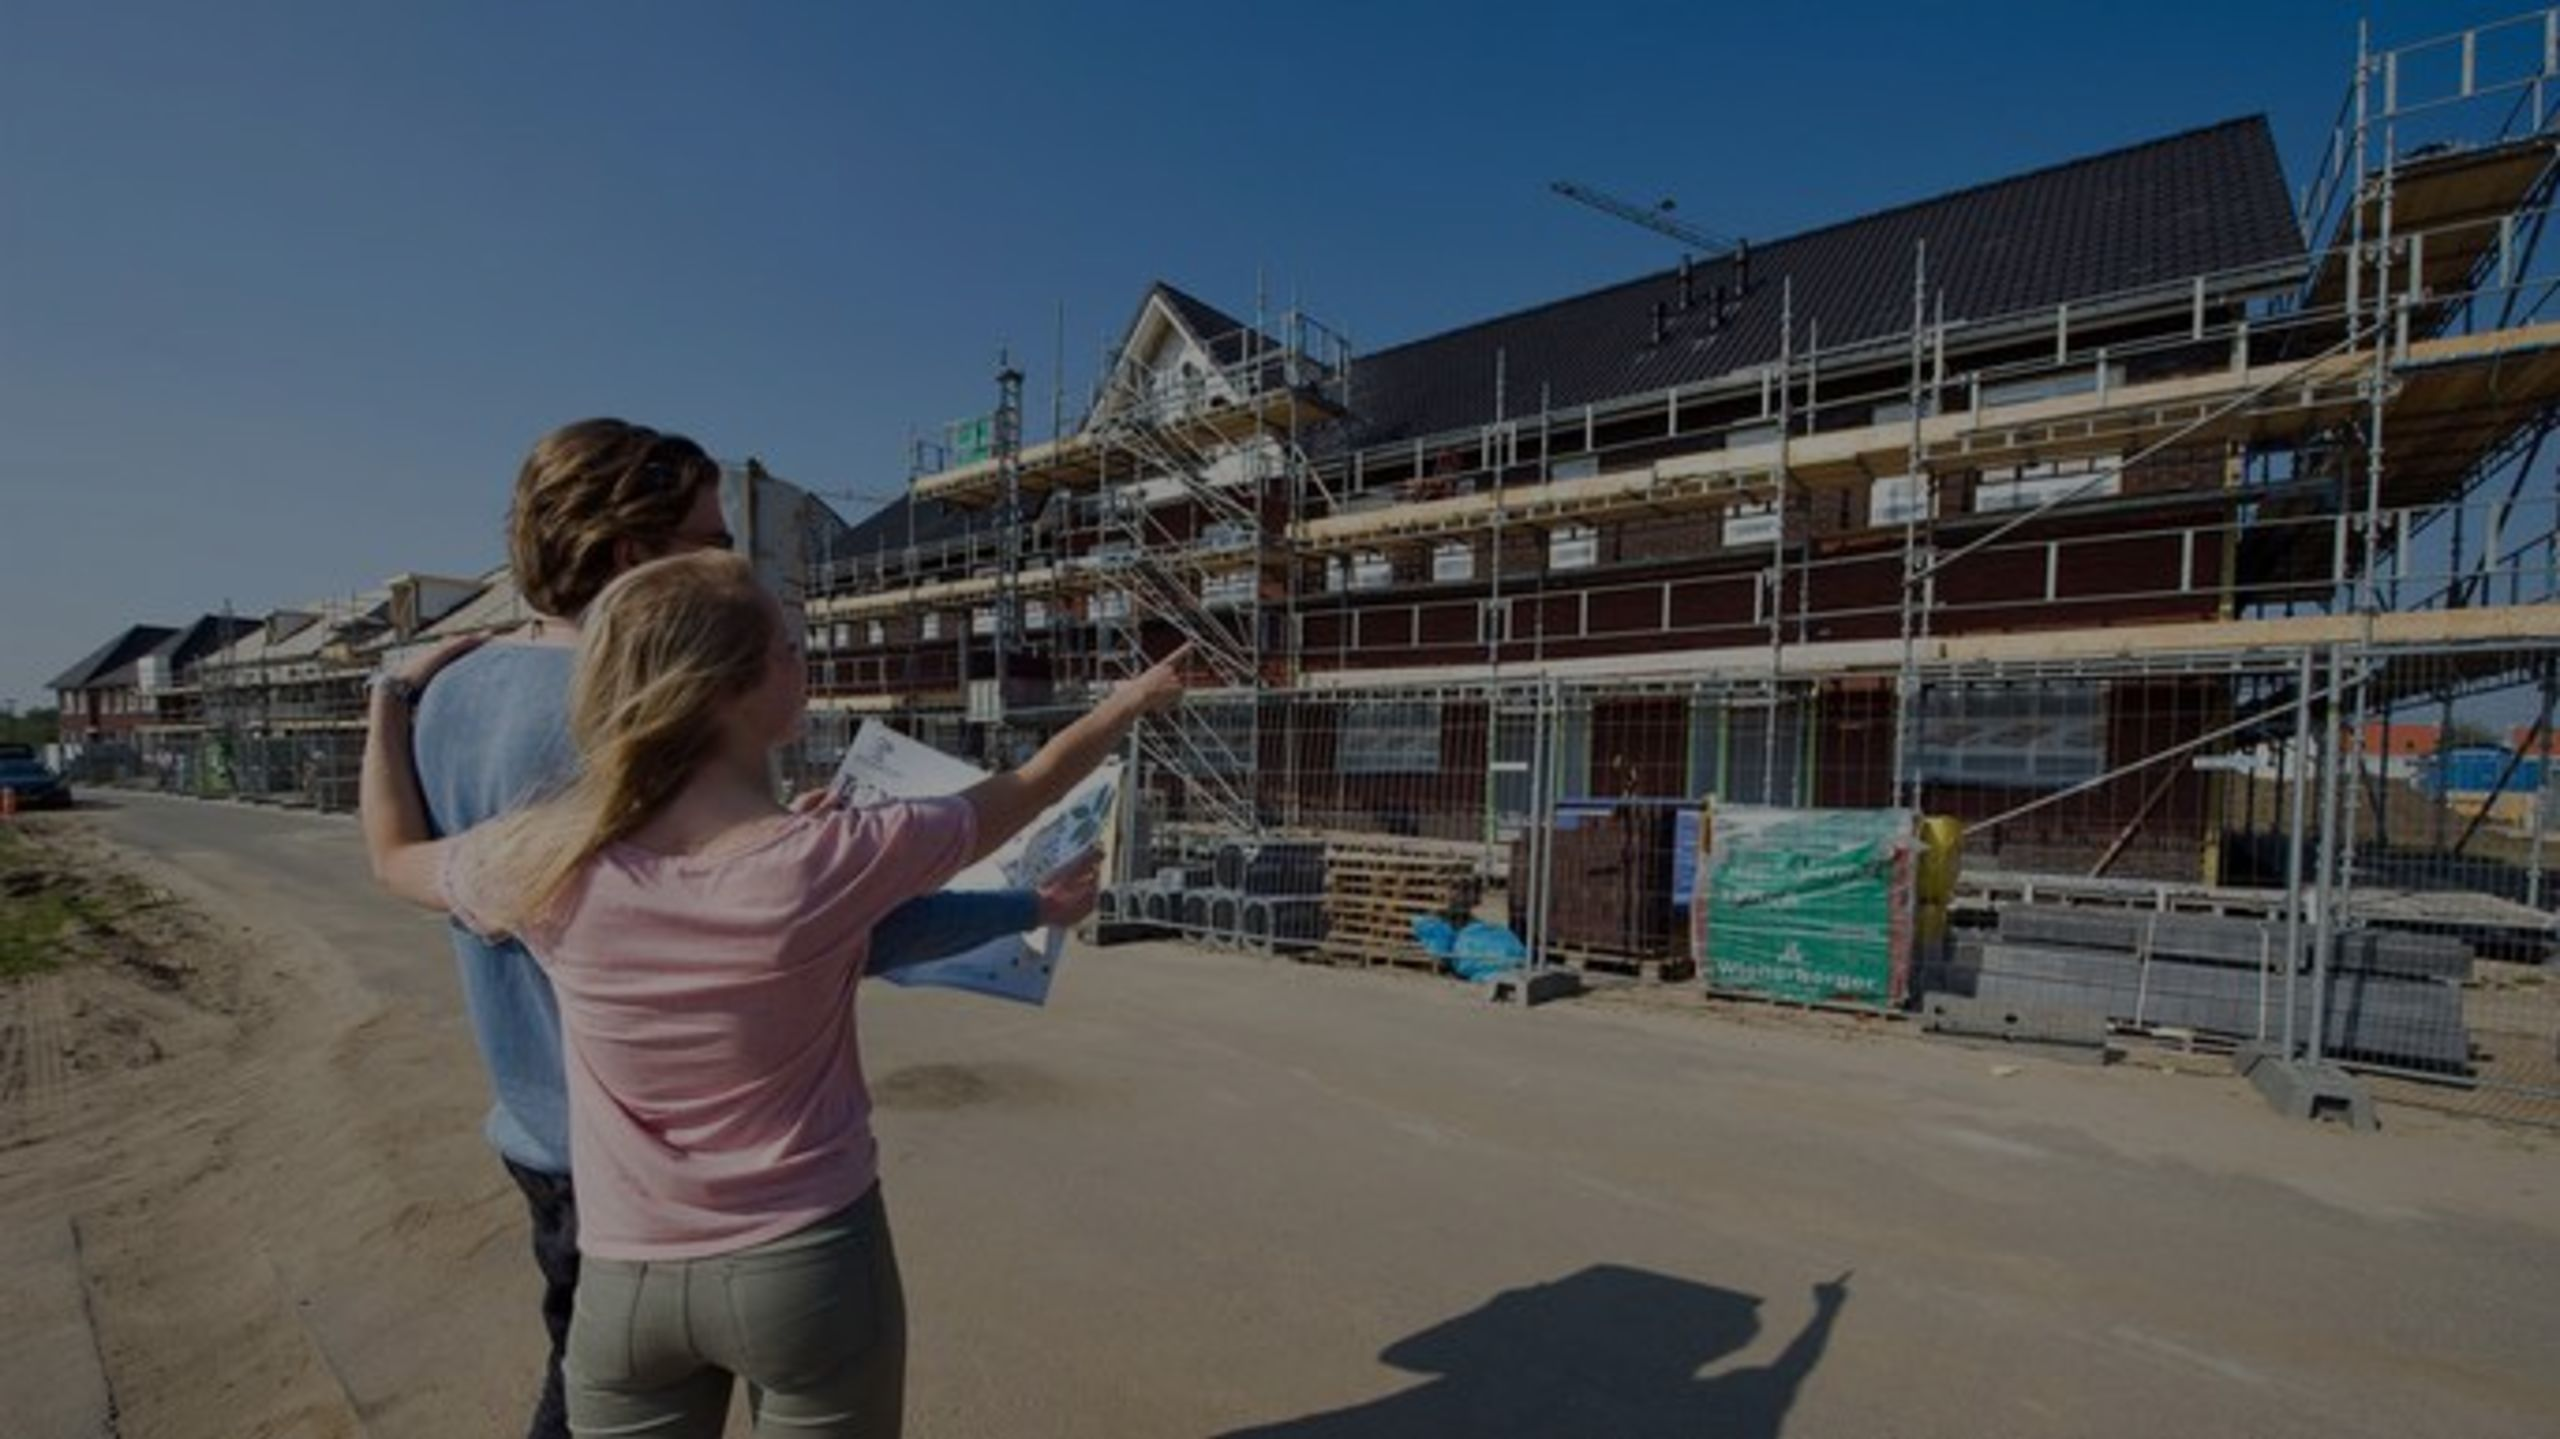 Buying New Construction Home? Why You Need Your Own Real Estate Agent